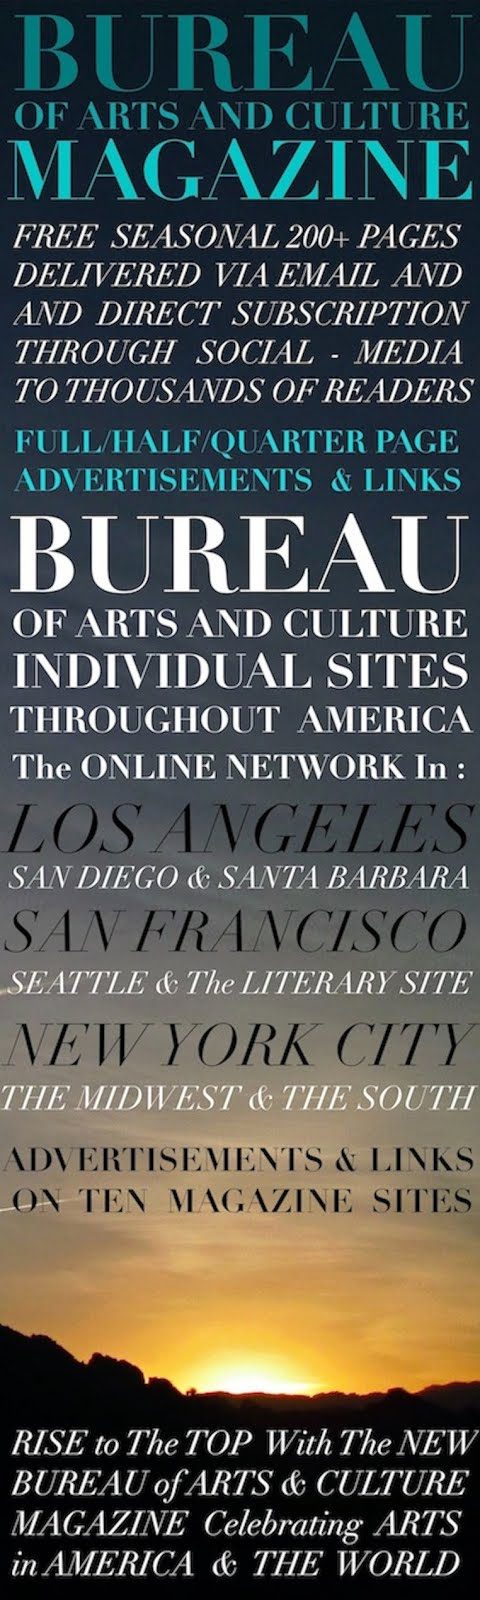 VISIT BUREAU ACROSS THE USA